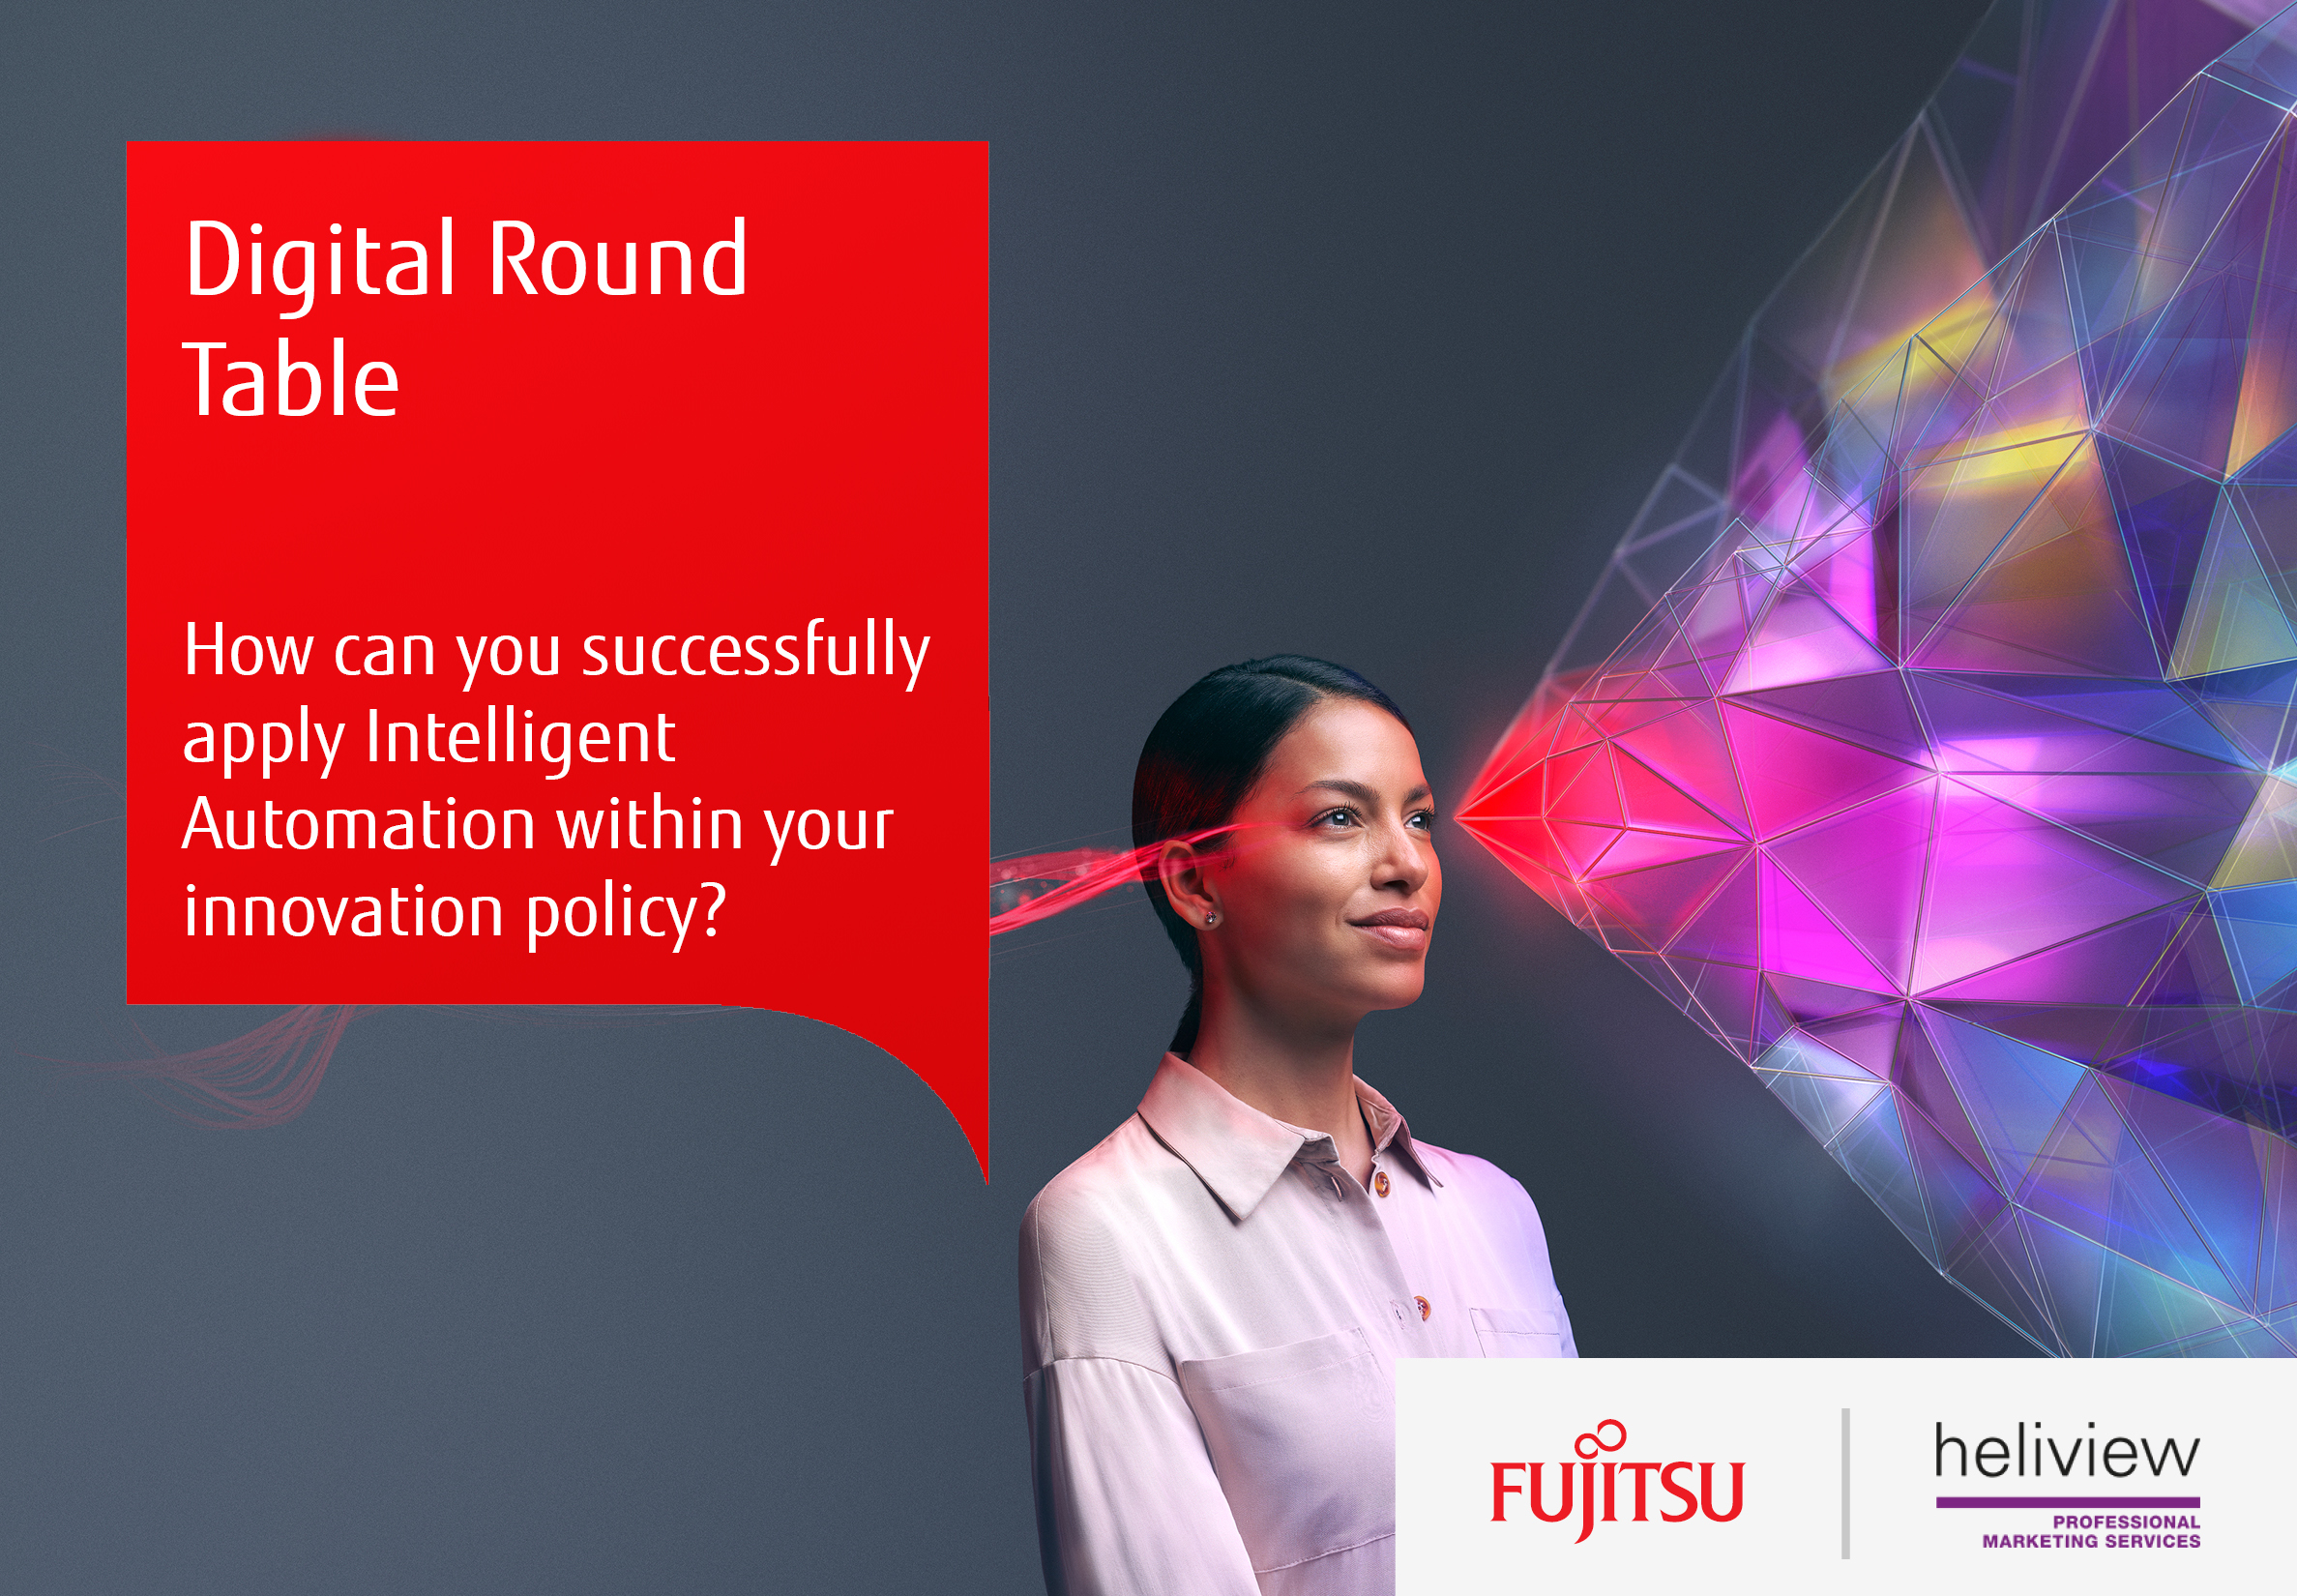 DIGITAL ROUND TABLE